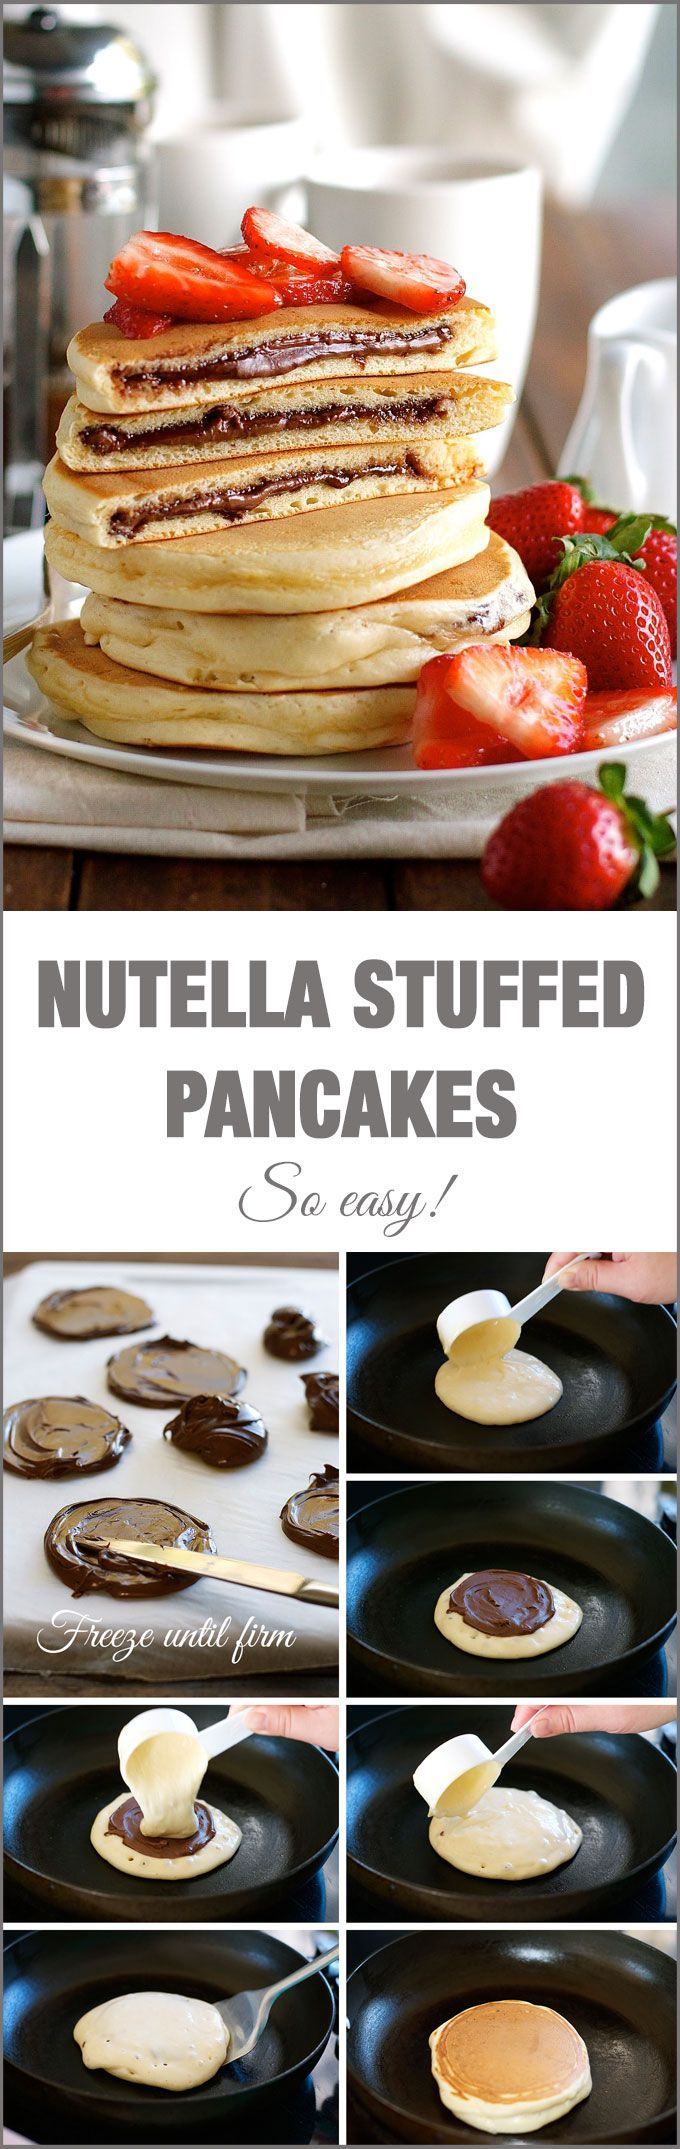 #Nutella Stuffed #Pancakes - frozen Nutella discs makes it a breeze to make the Nutella stuffed pancakes!